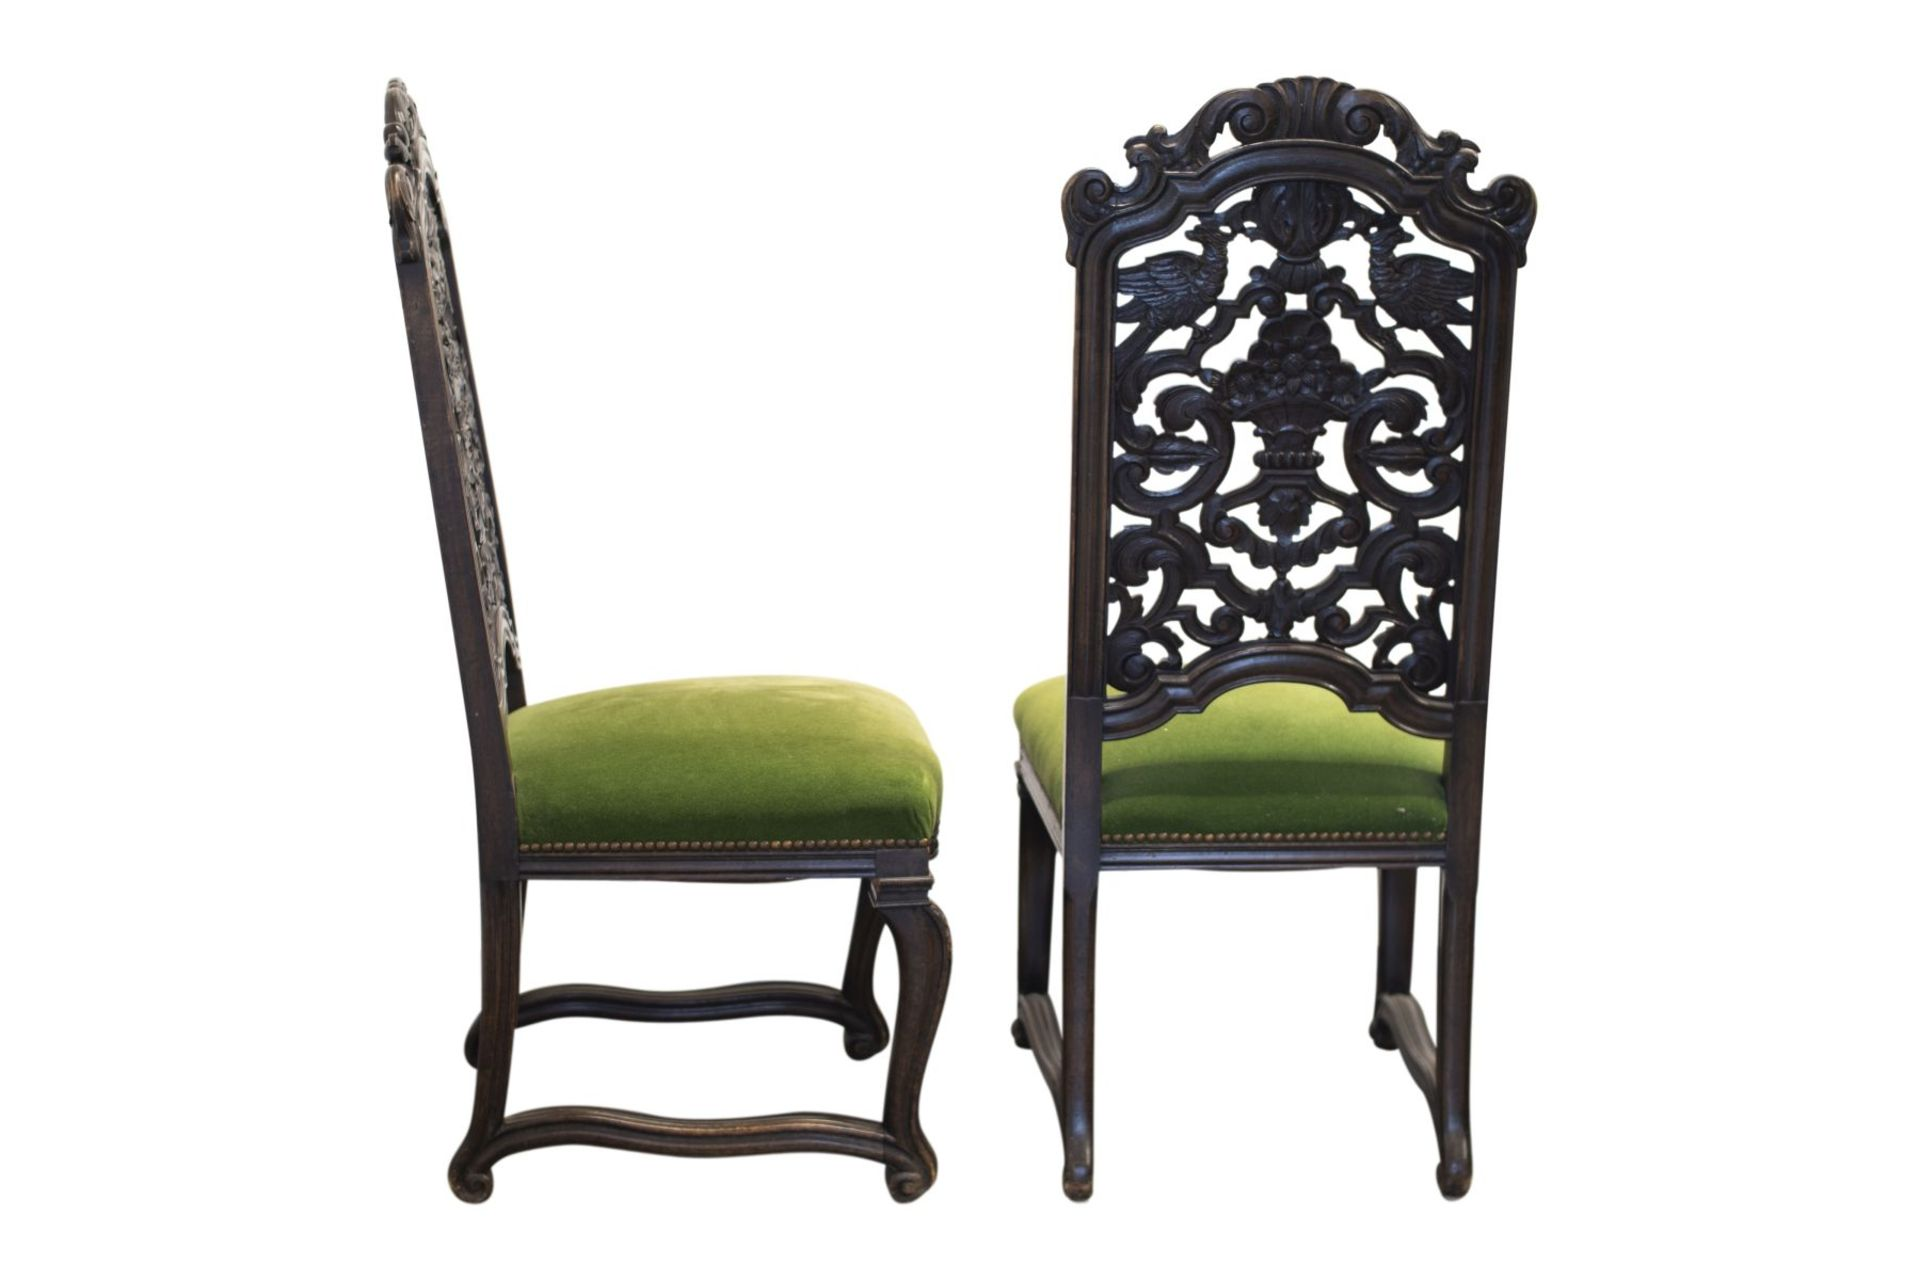 Pair of salon chairs, Belle Epoch style - Image 3 of 7